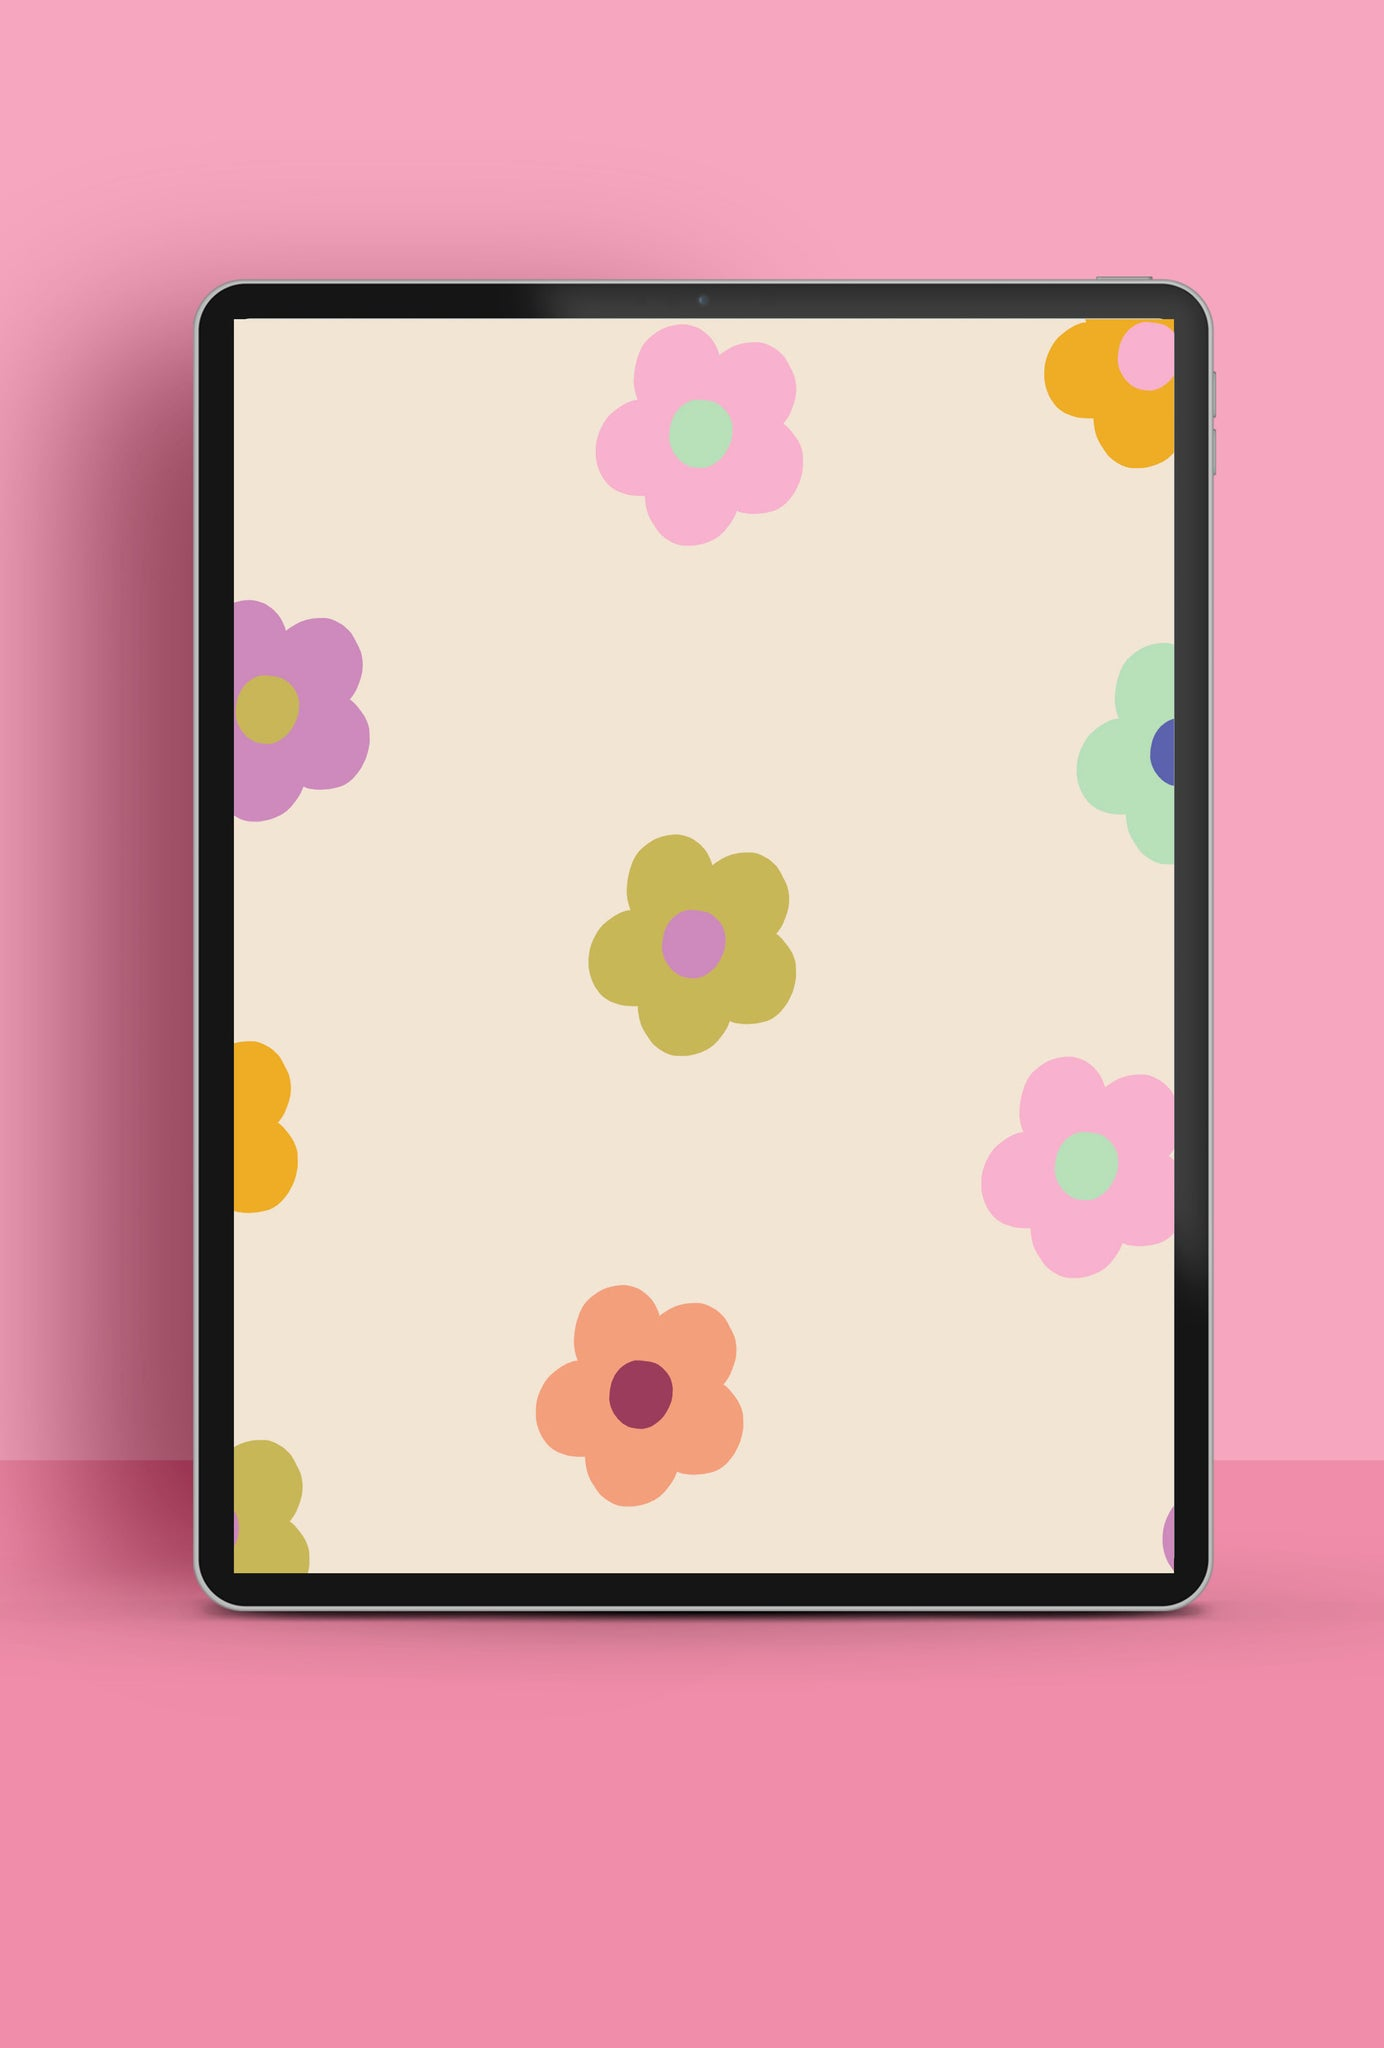 Colourful Daisies Free HD Tablet Wallpaper Download   Raspberry Blossom